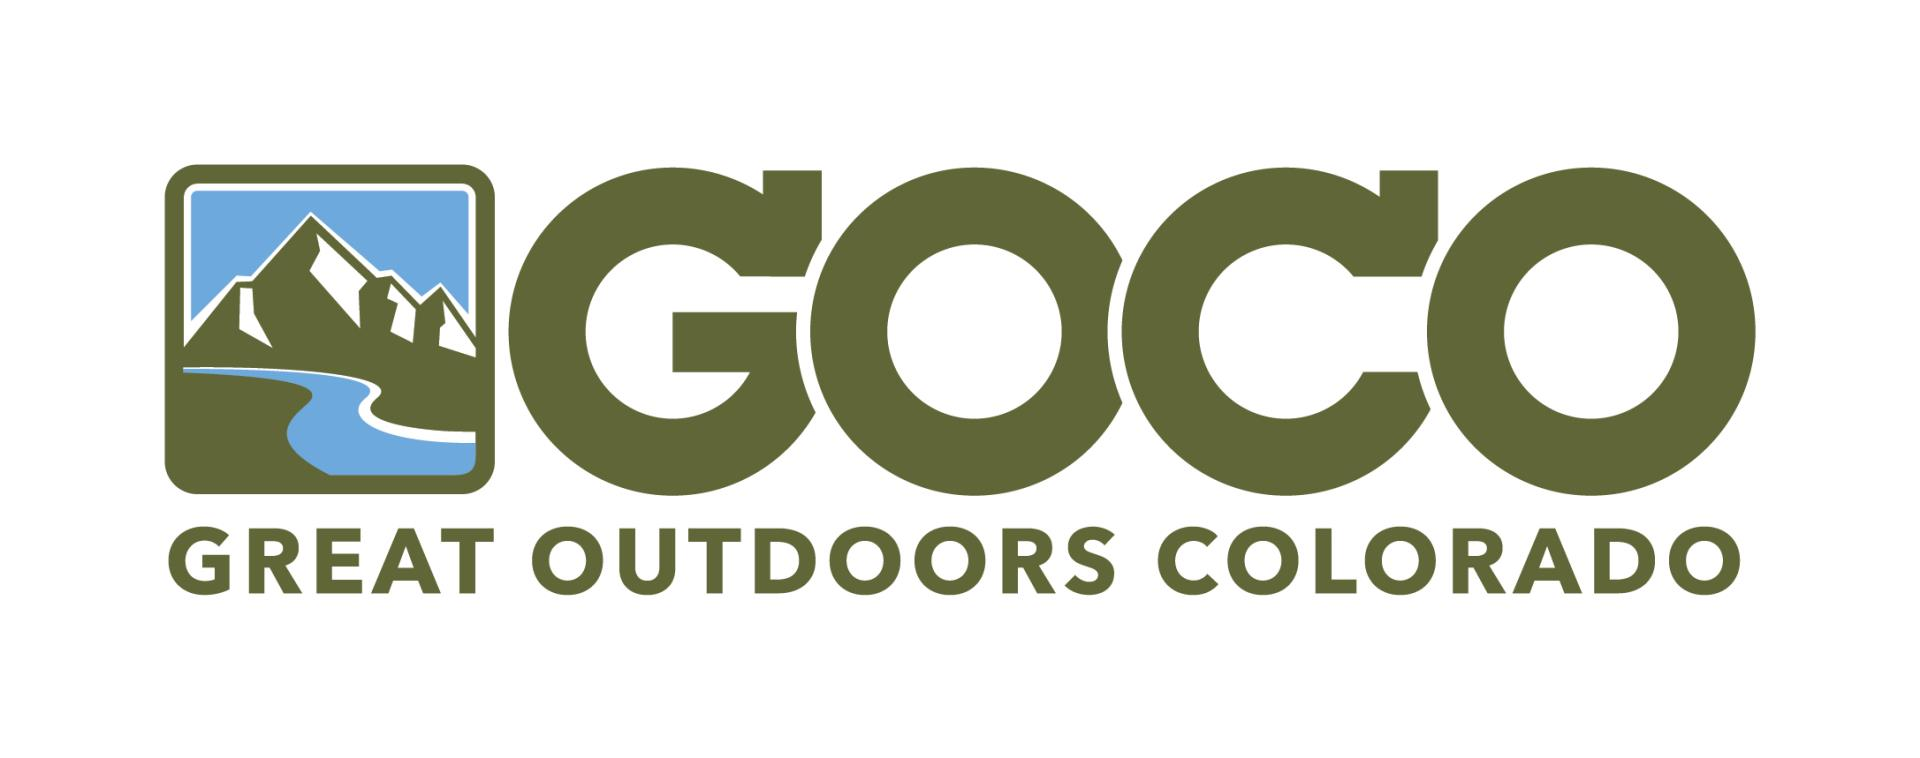 Great Outdoors Colorado GOCO logo